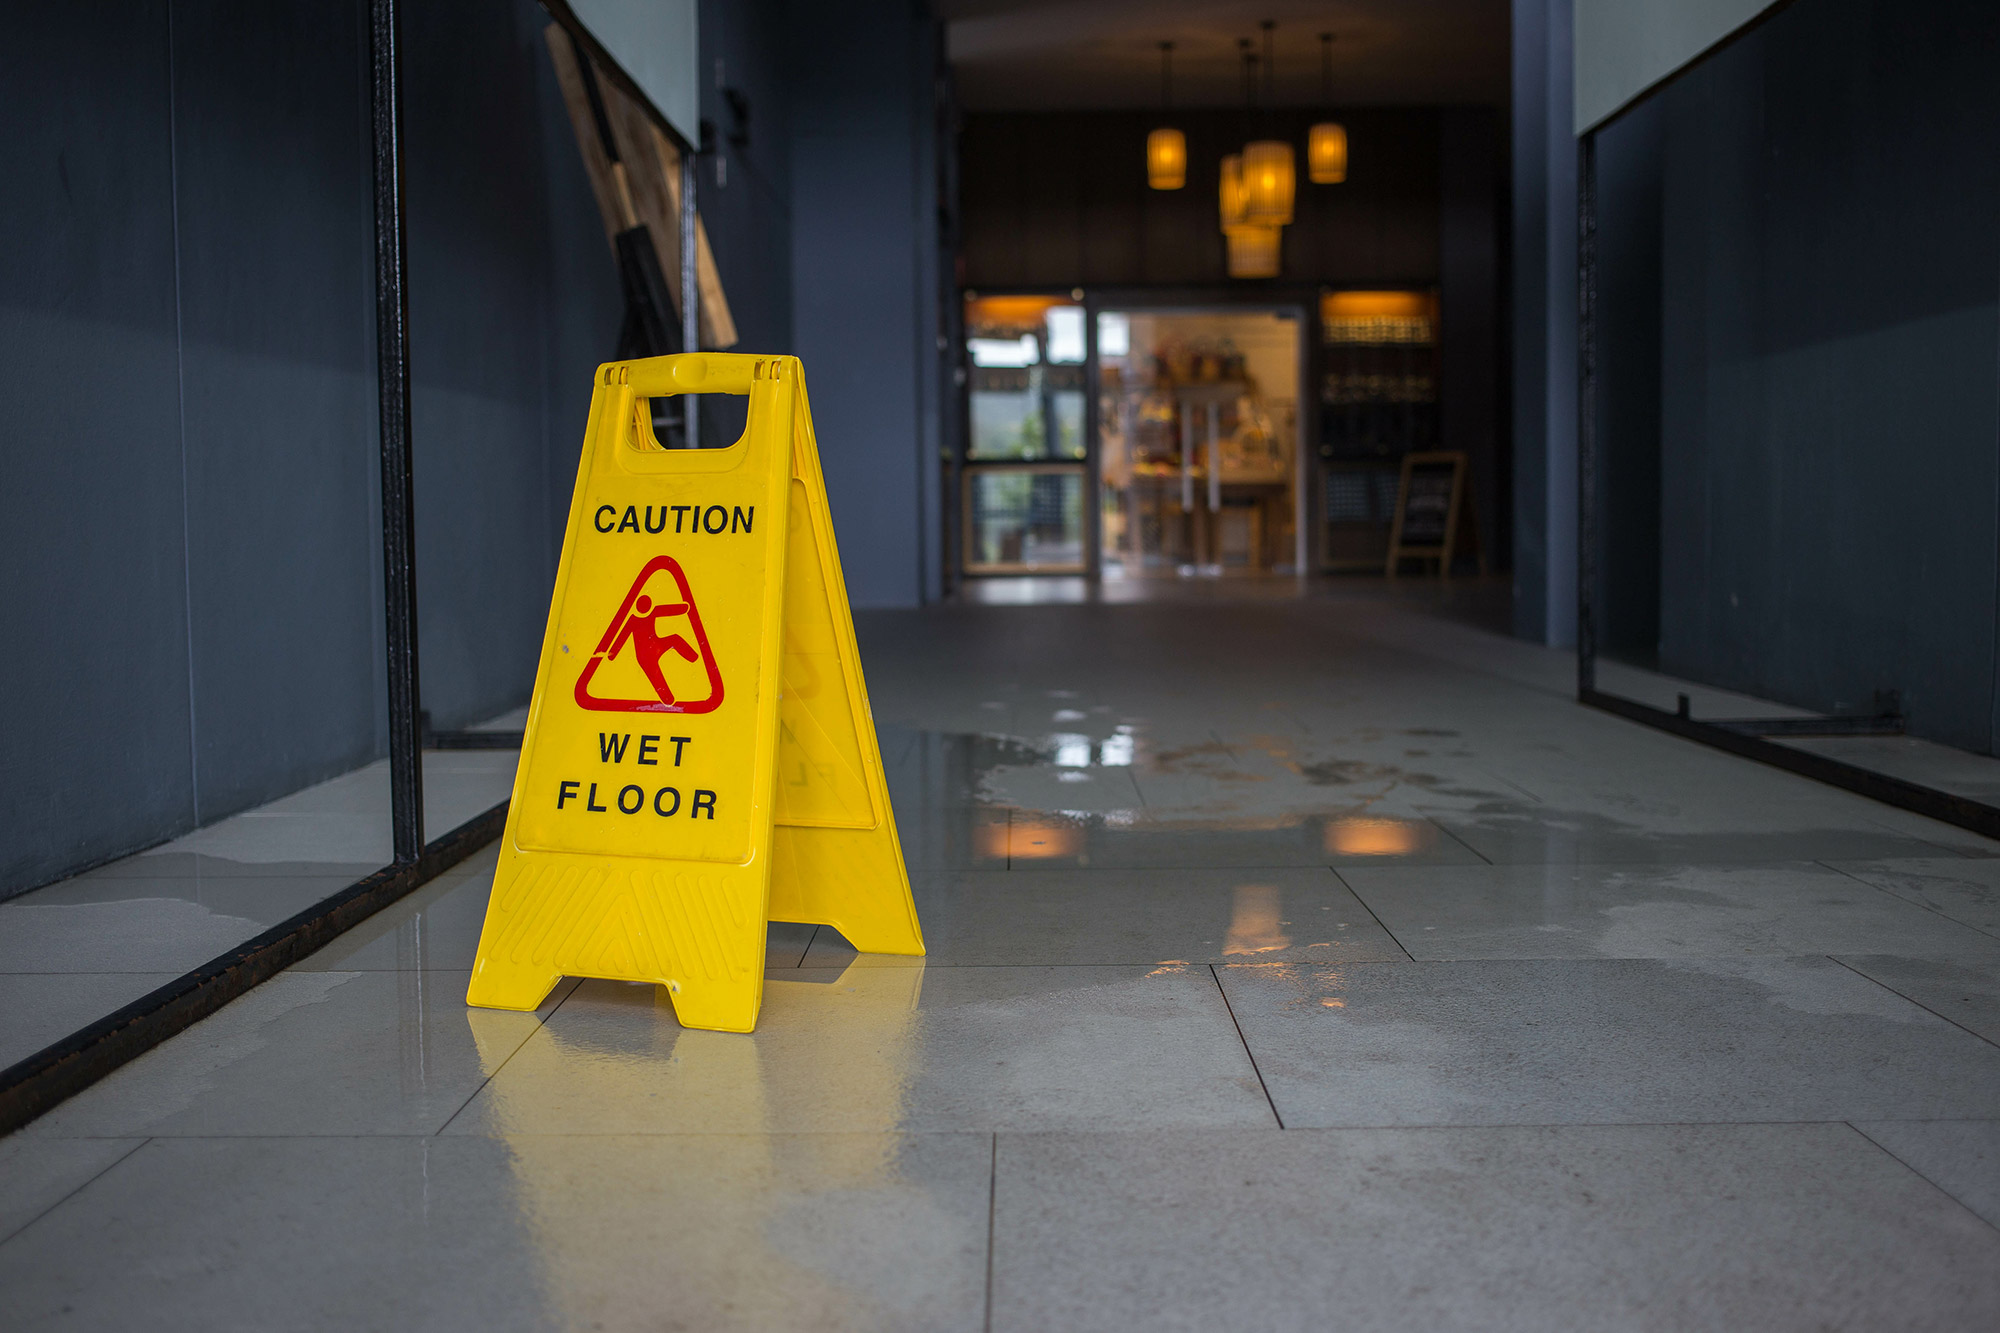 Wet floor sign next to puddle of water